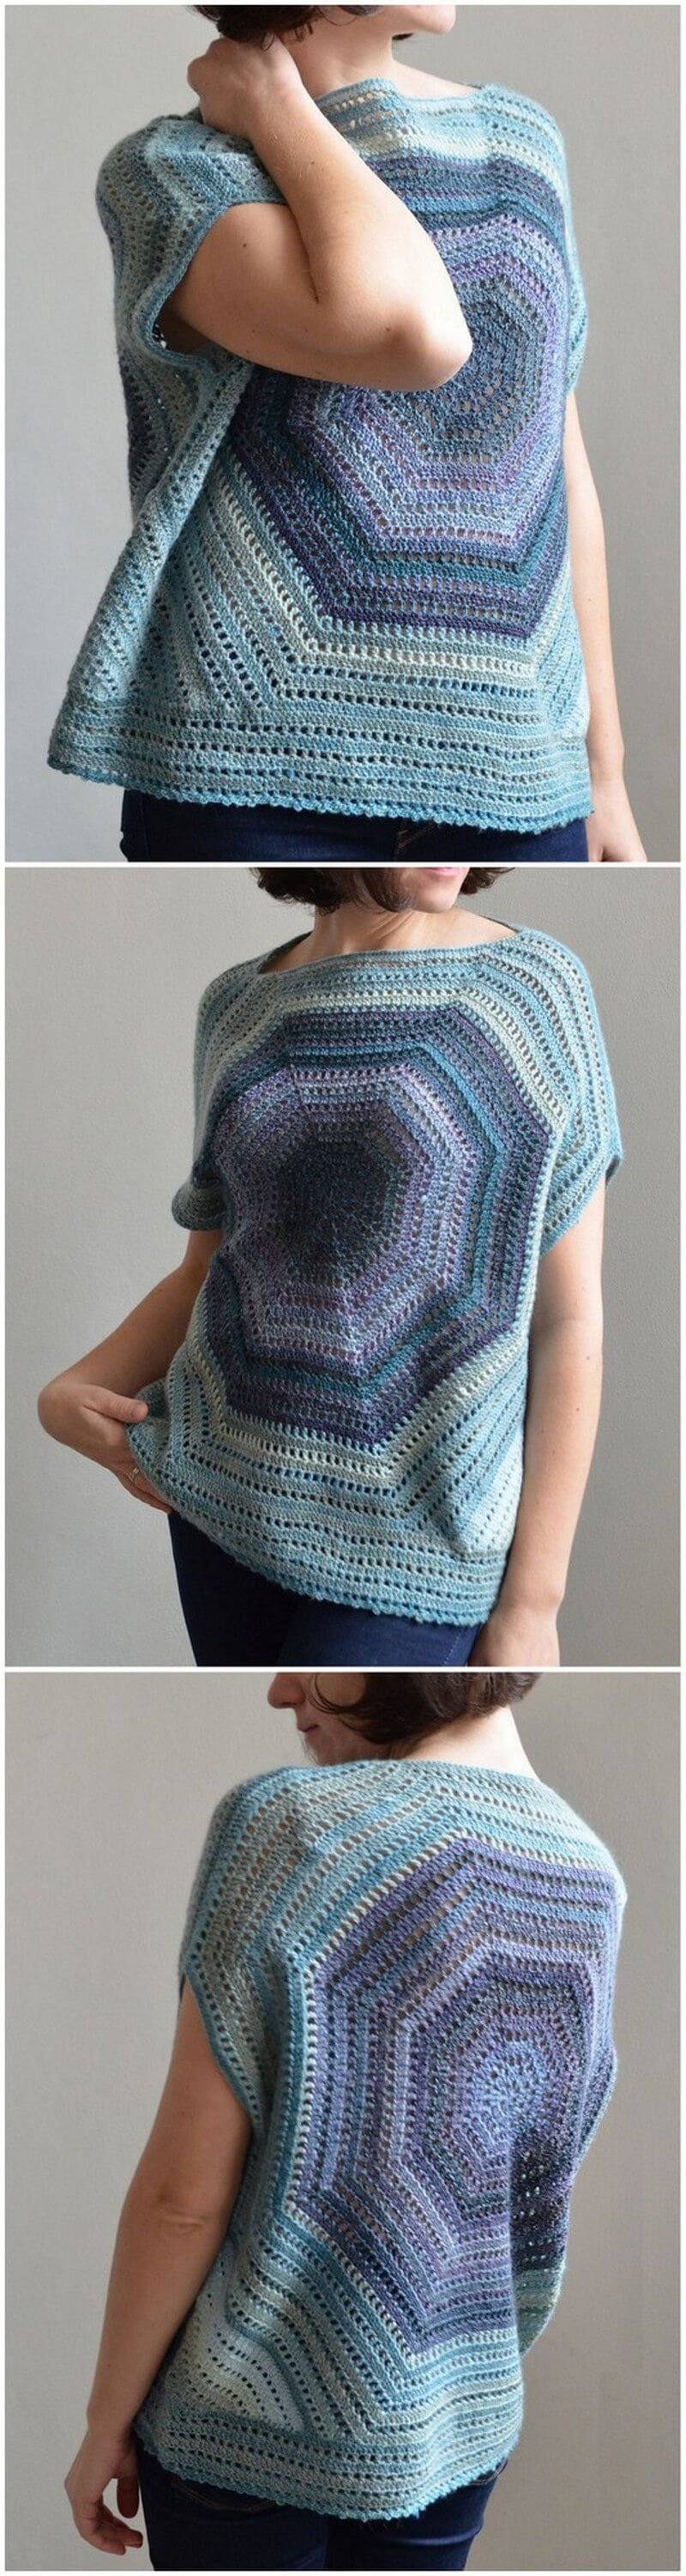 Crochet Sweater Pattern (63)